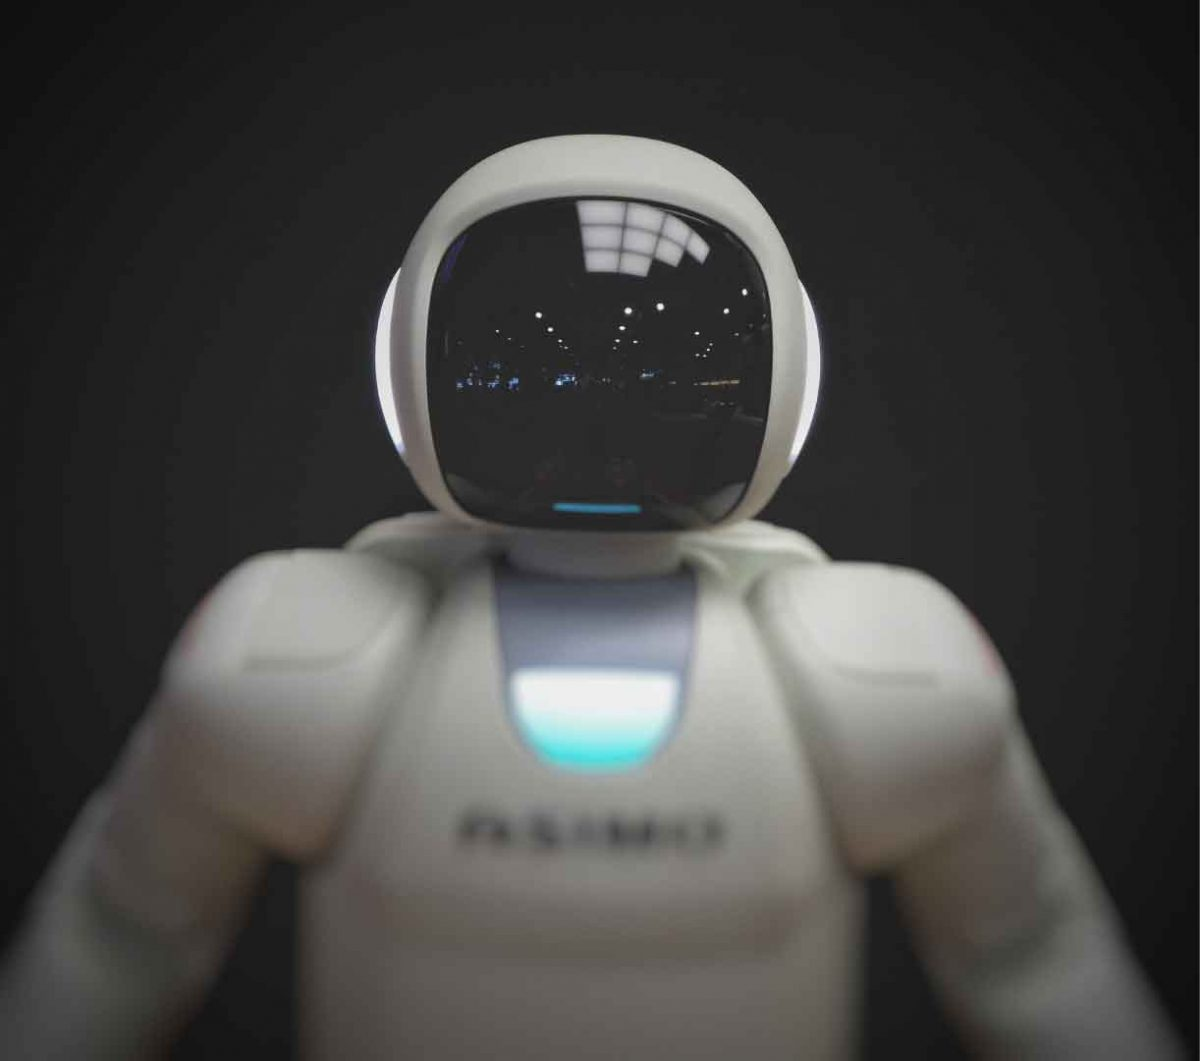 20 Great Articles About AI/Robots in Content Marketing